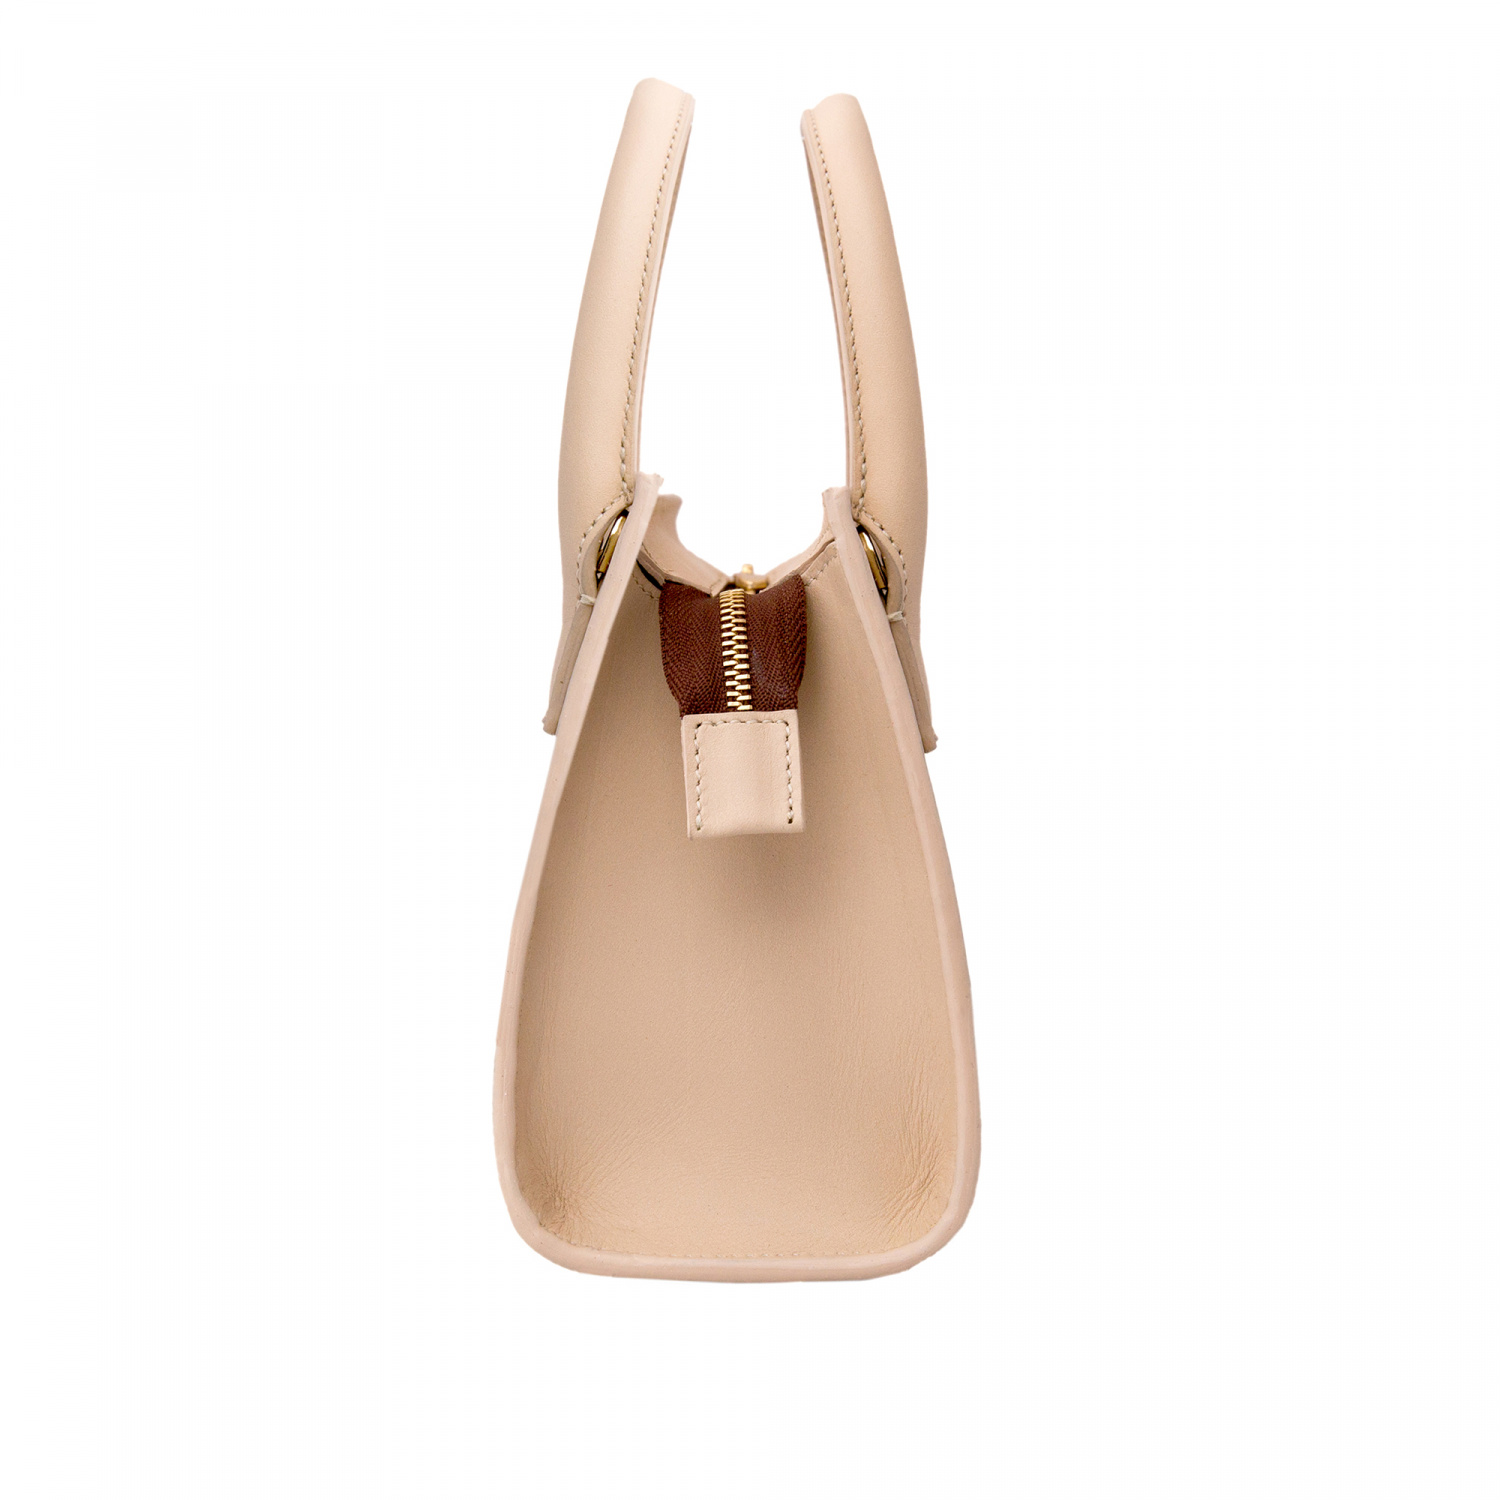 MIA MINI BAG IN CALFSKIN